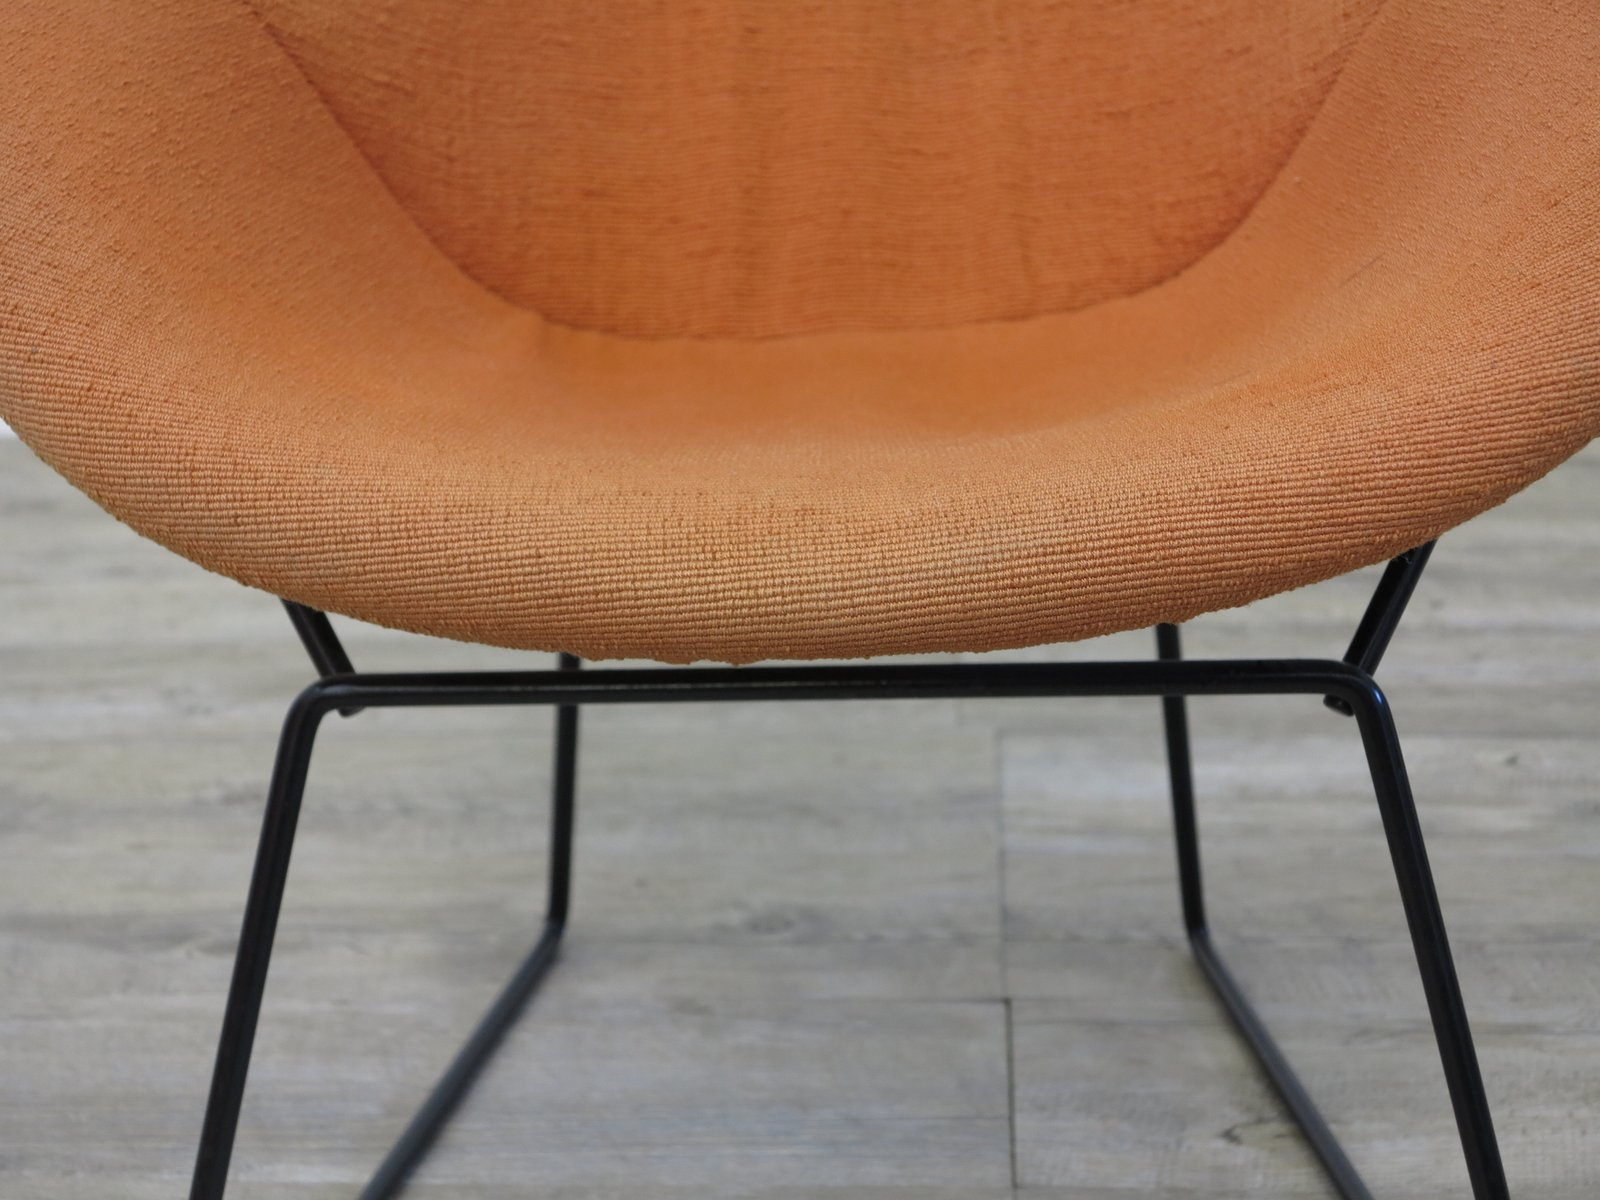 Vintage Diamond Chair by Harry Bertoia for Knoll 1970s for sale